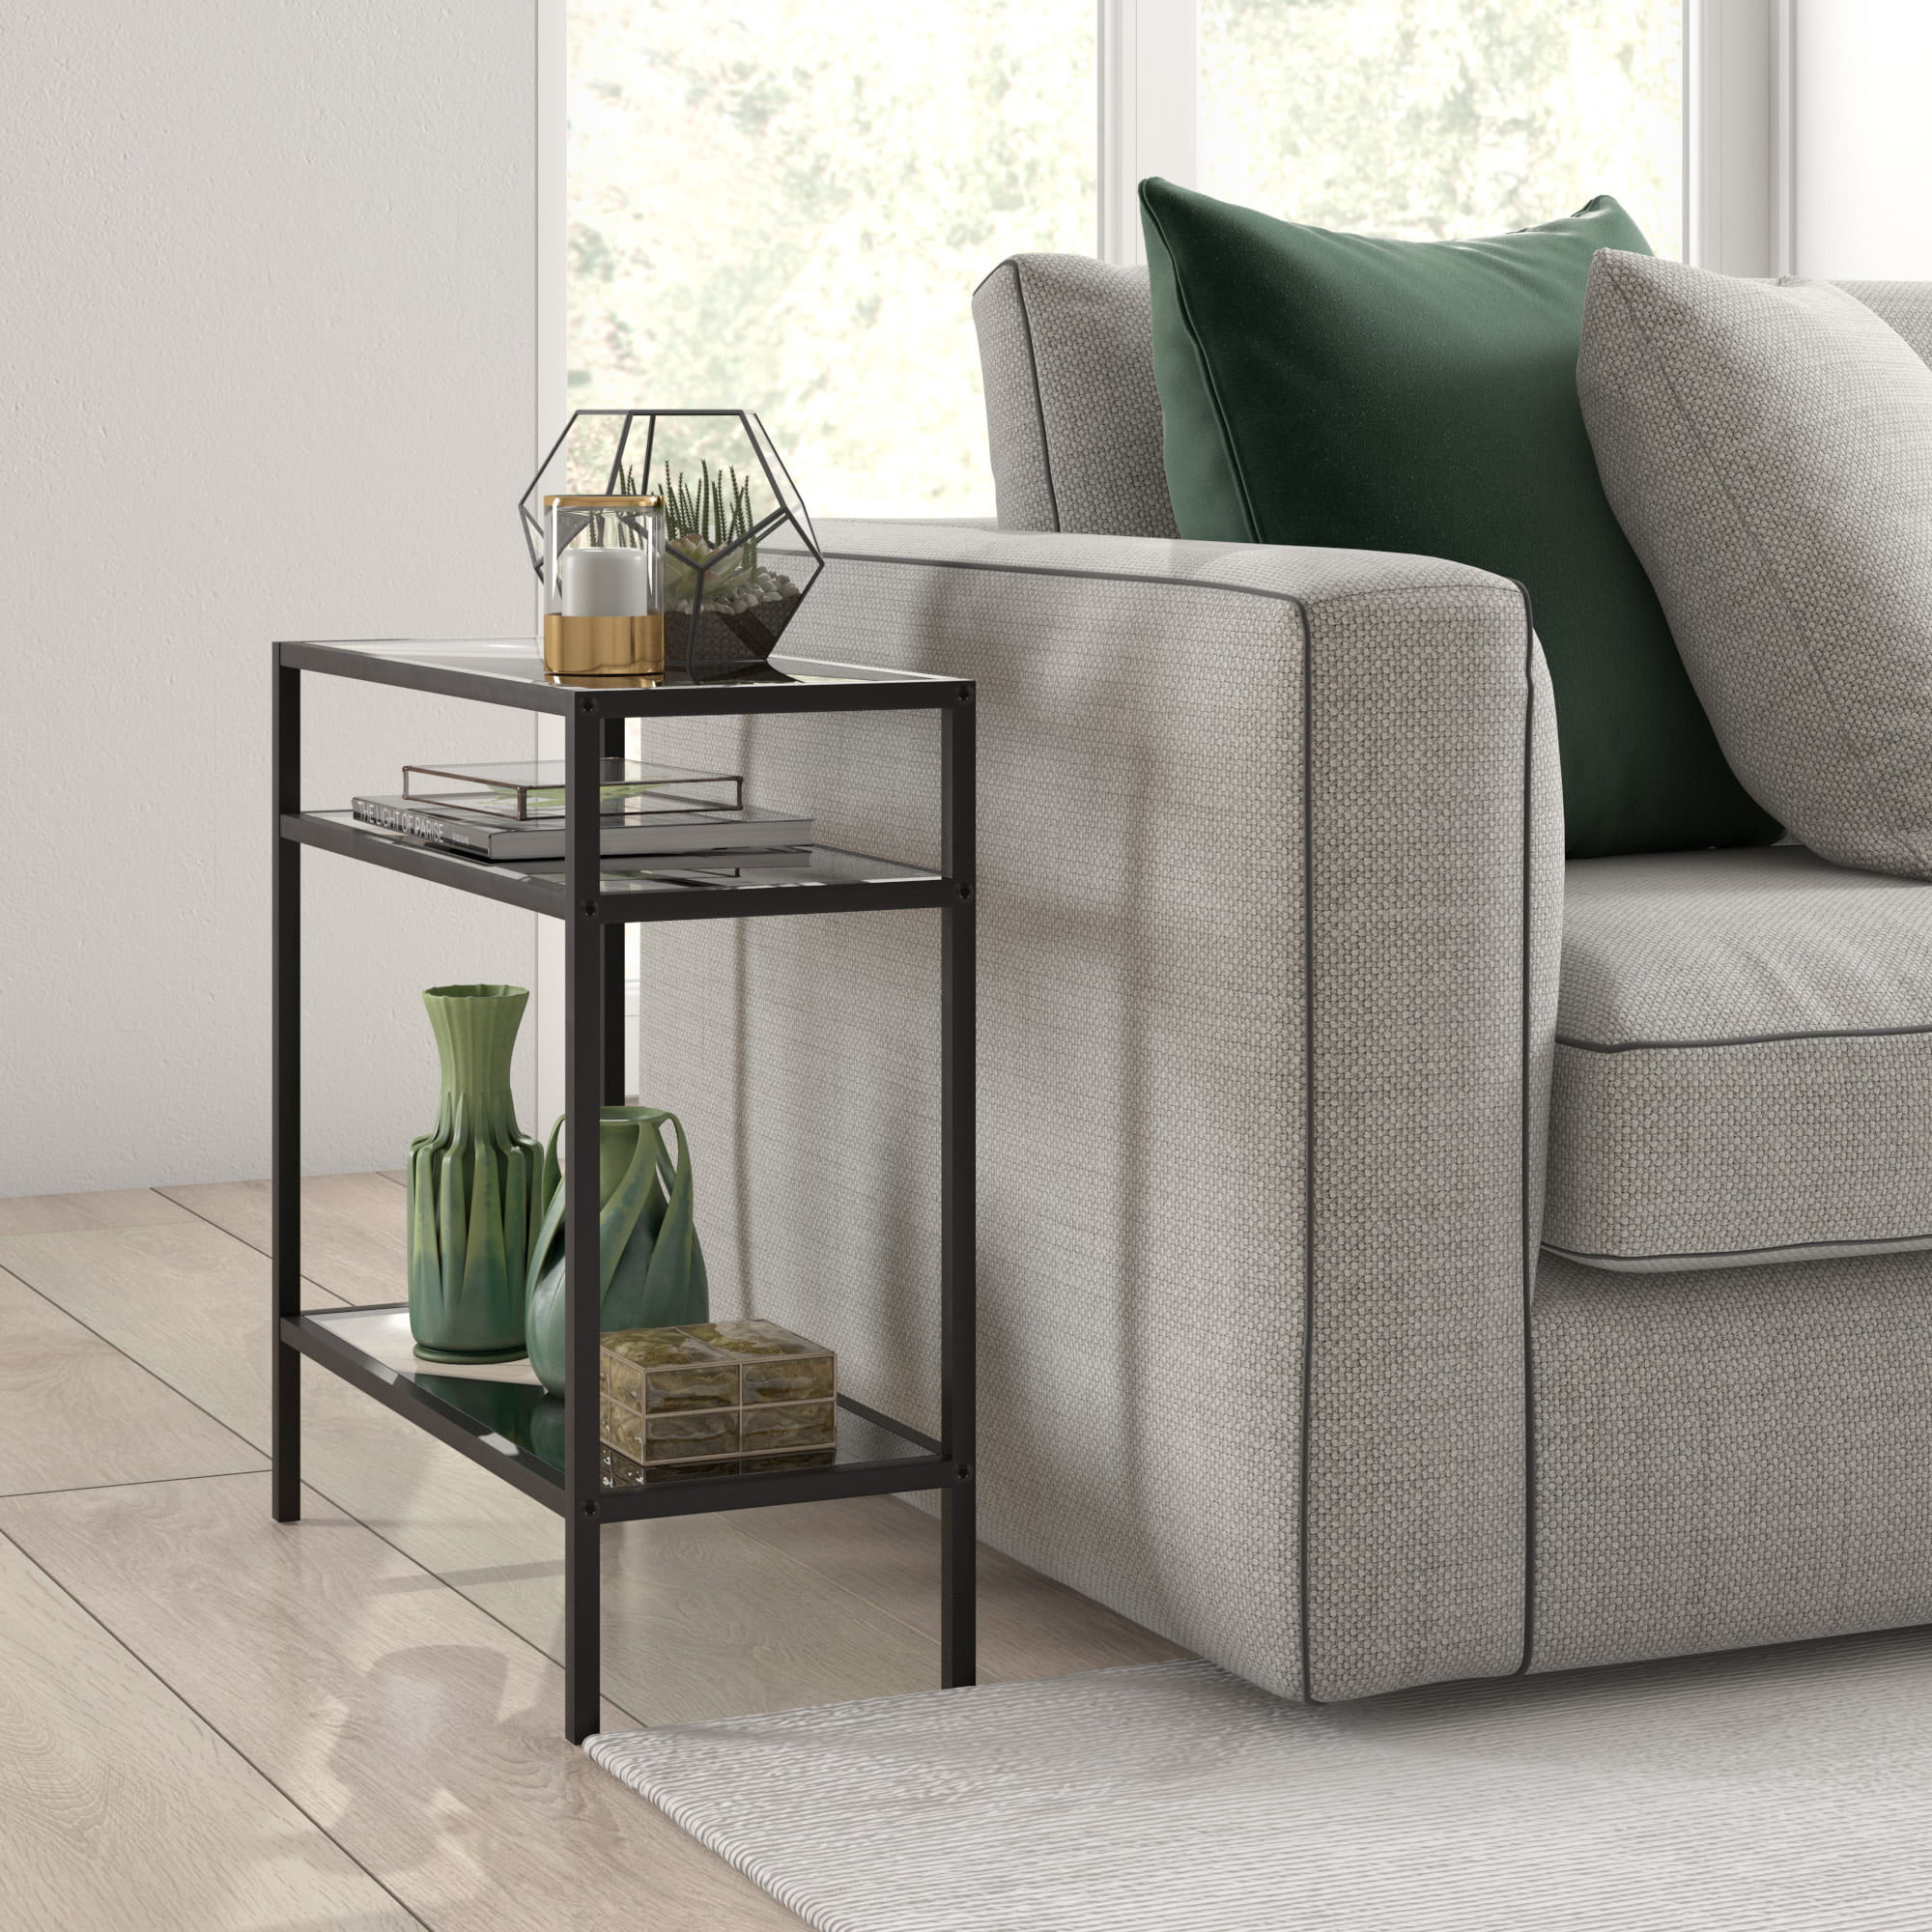 evelynzoe contemporary rectangular side table with glass